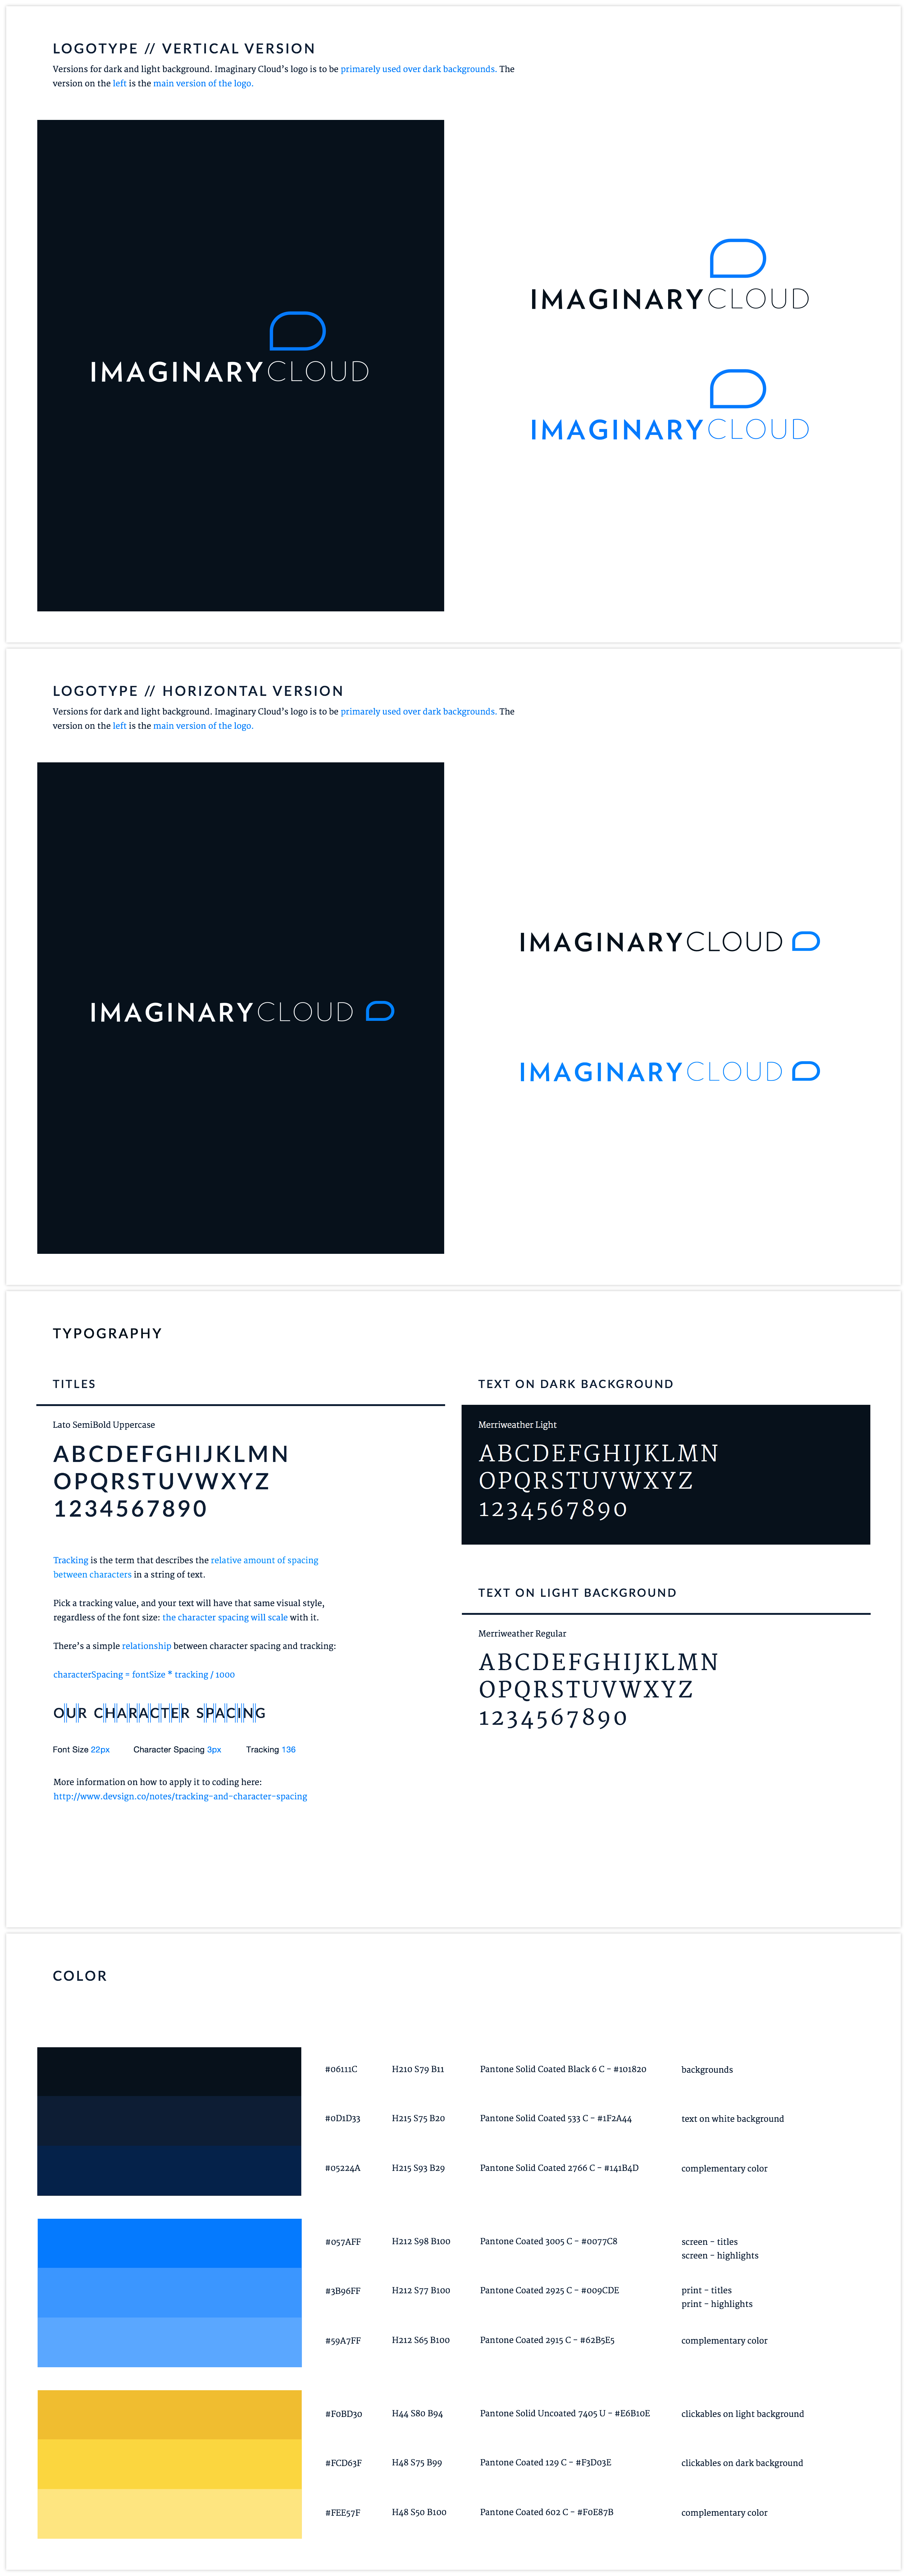 Imaginary Cloud Guidelines